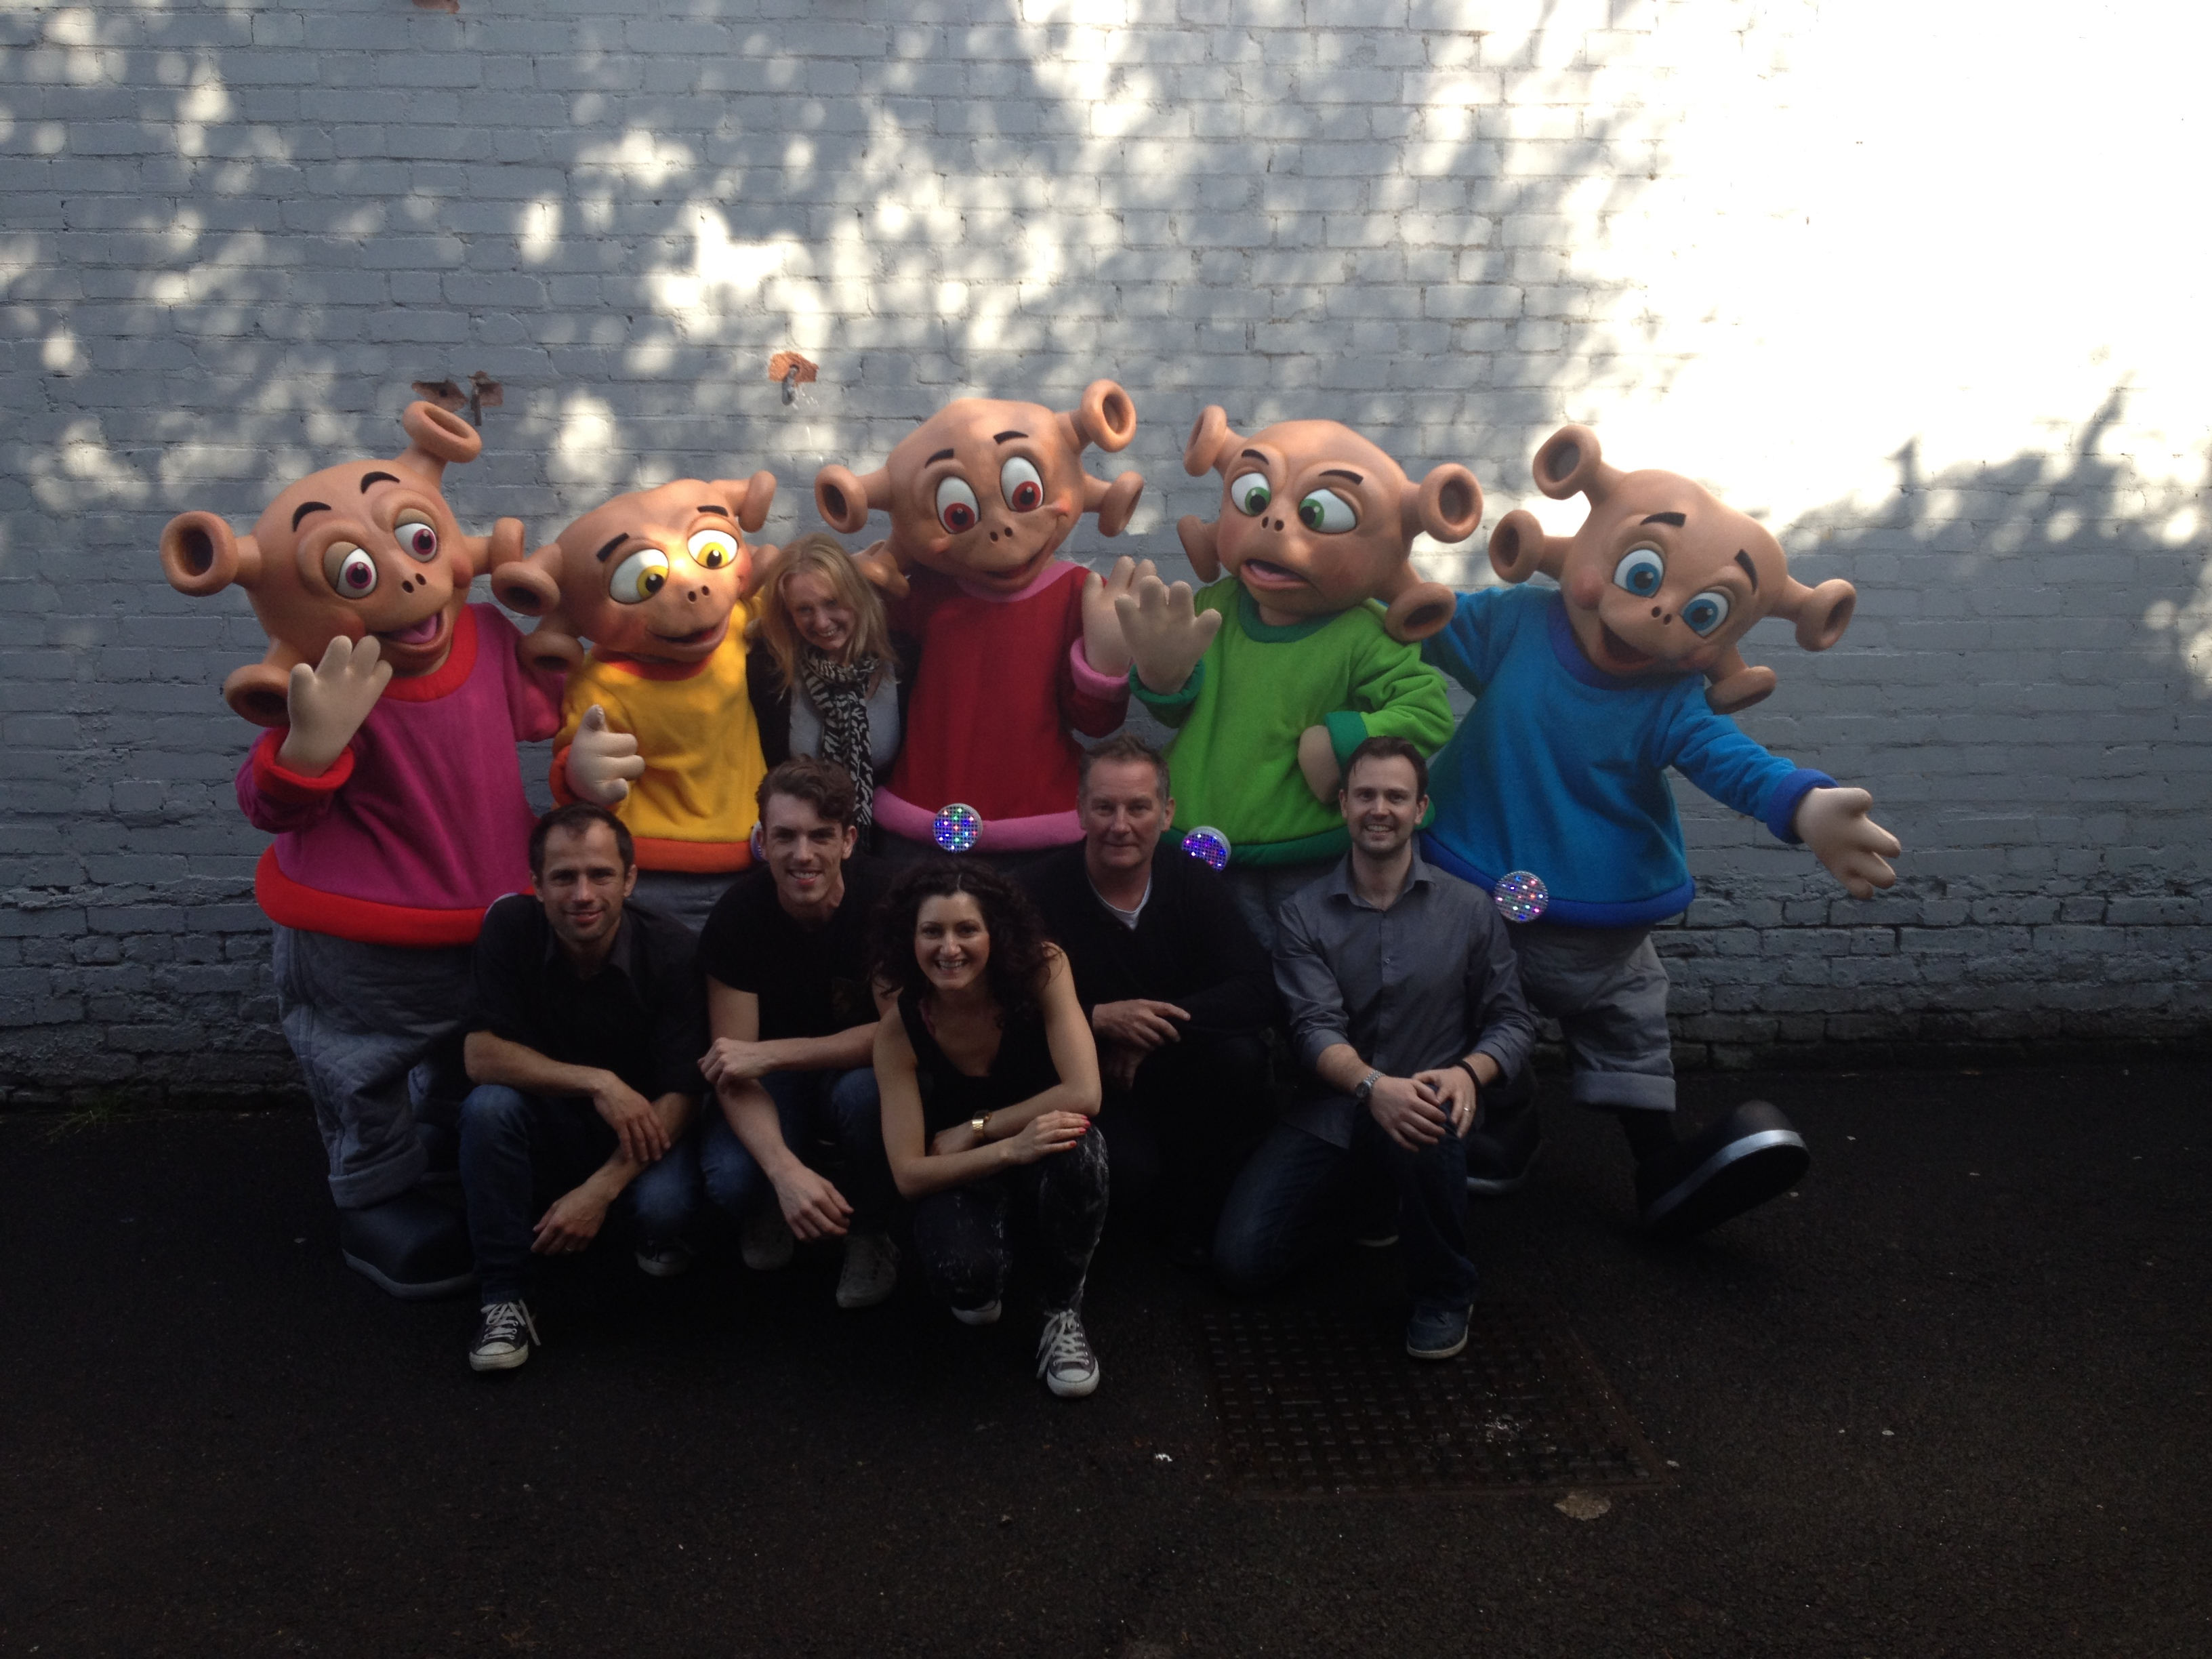 The Zoonies characters and all the producers and creatives.